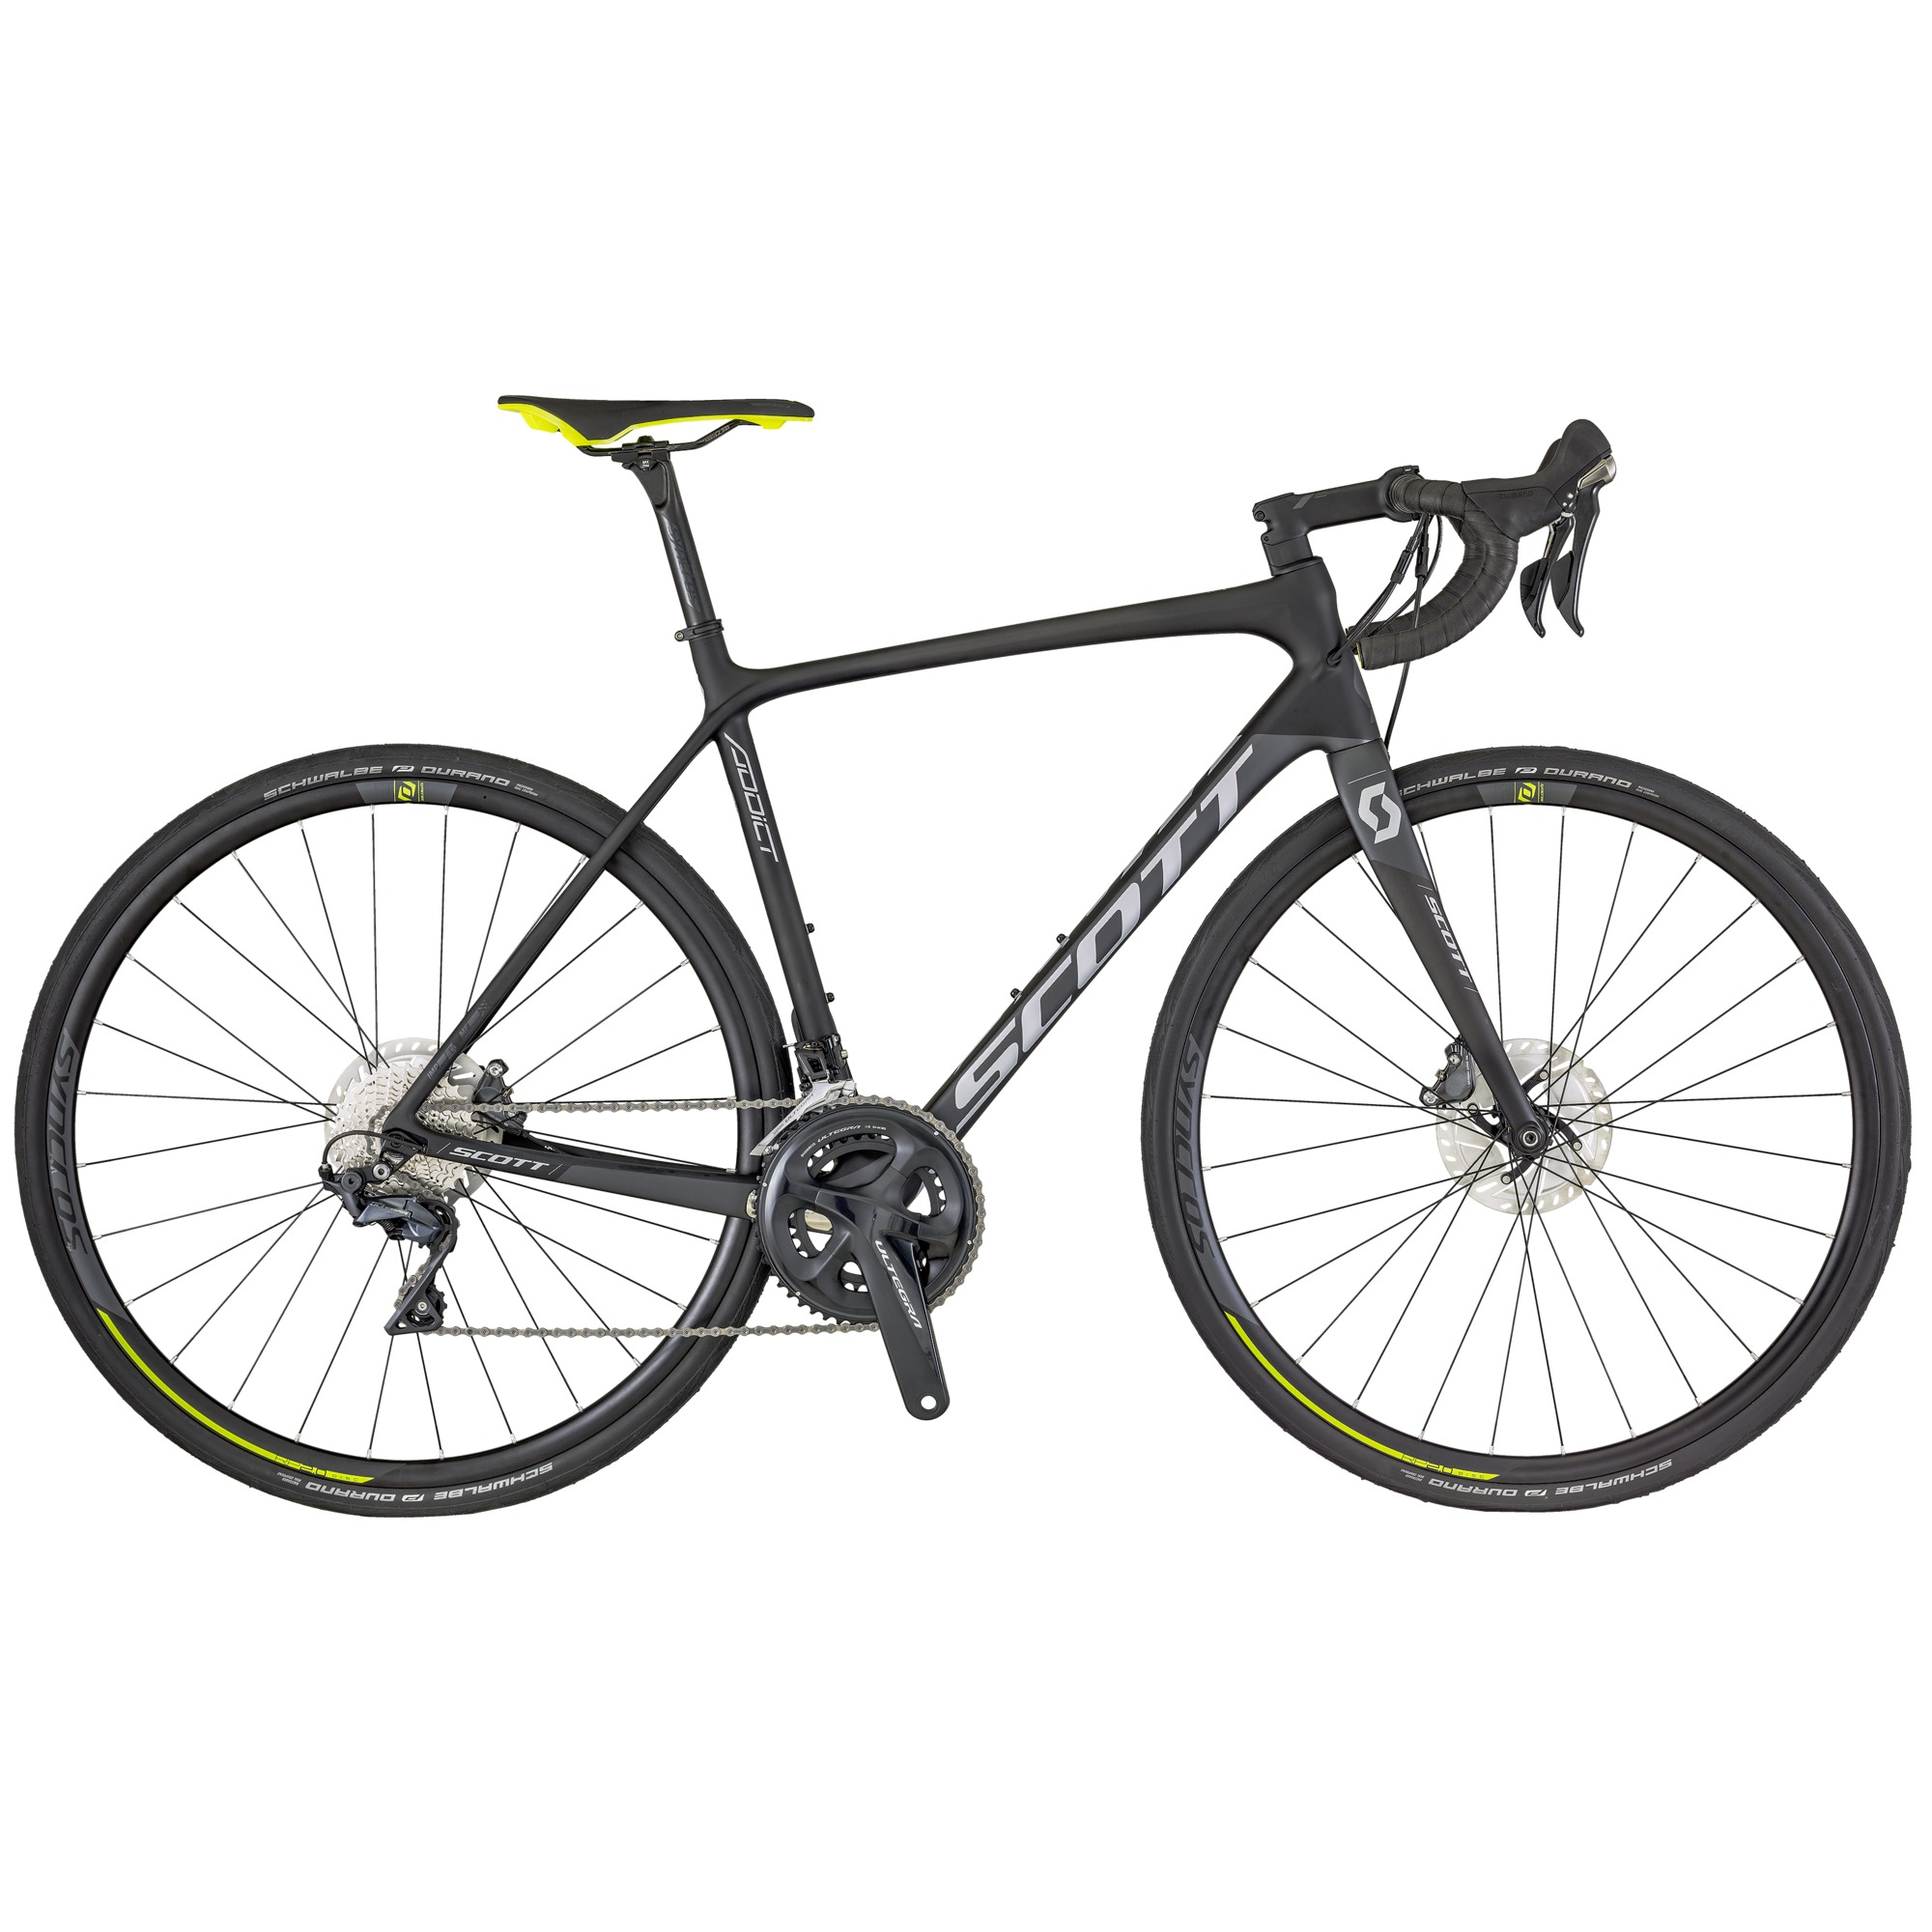 SCOTT Addict 10 Disc Bike M54 - Zweirad Homann